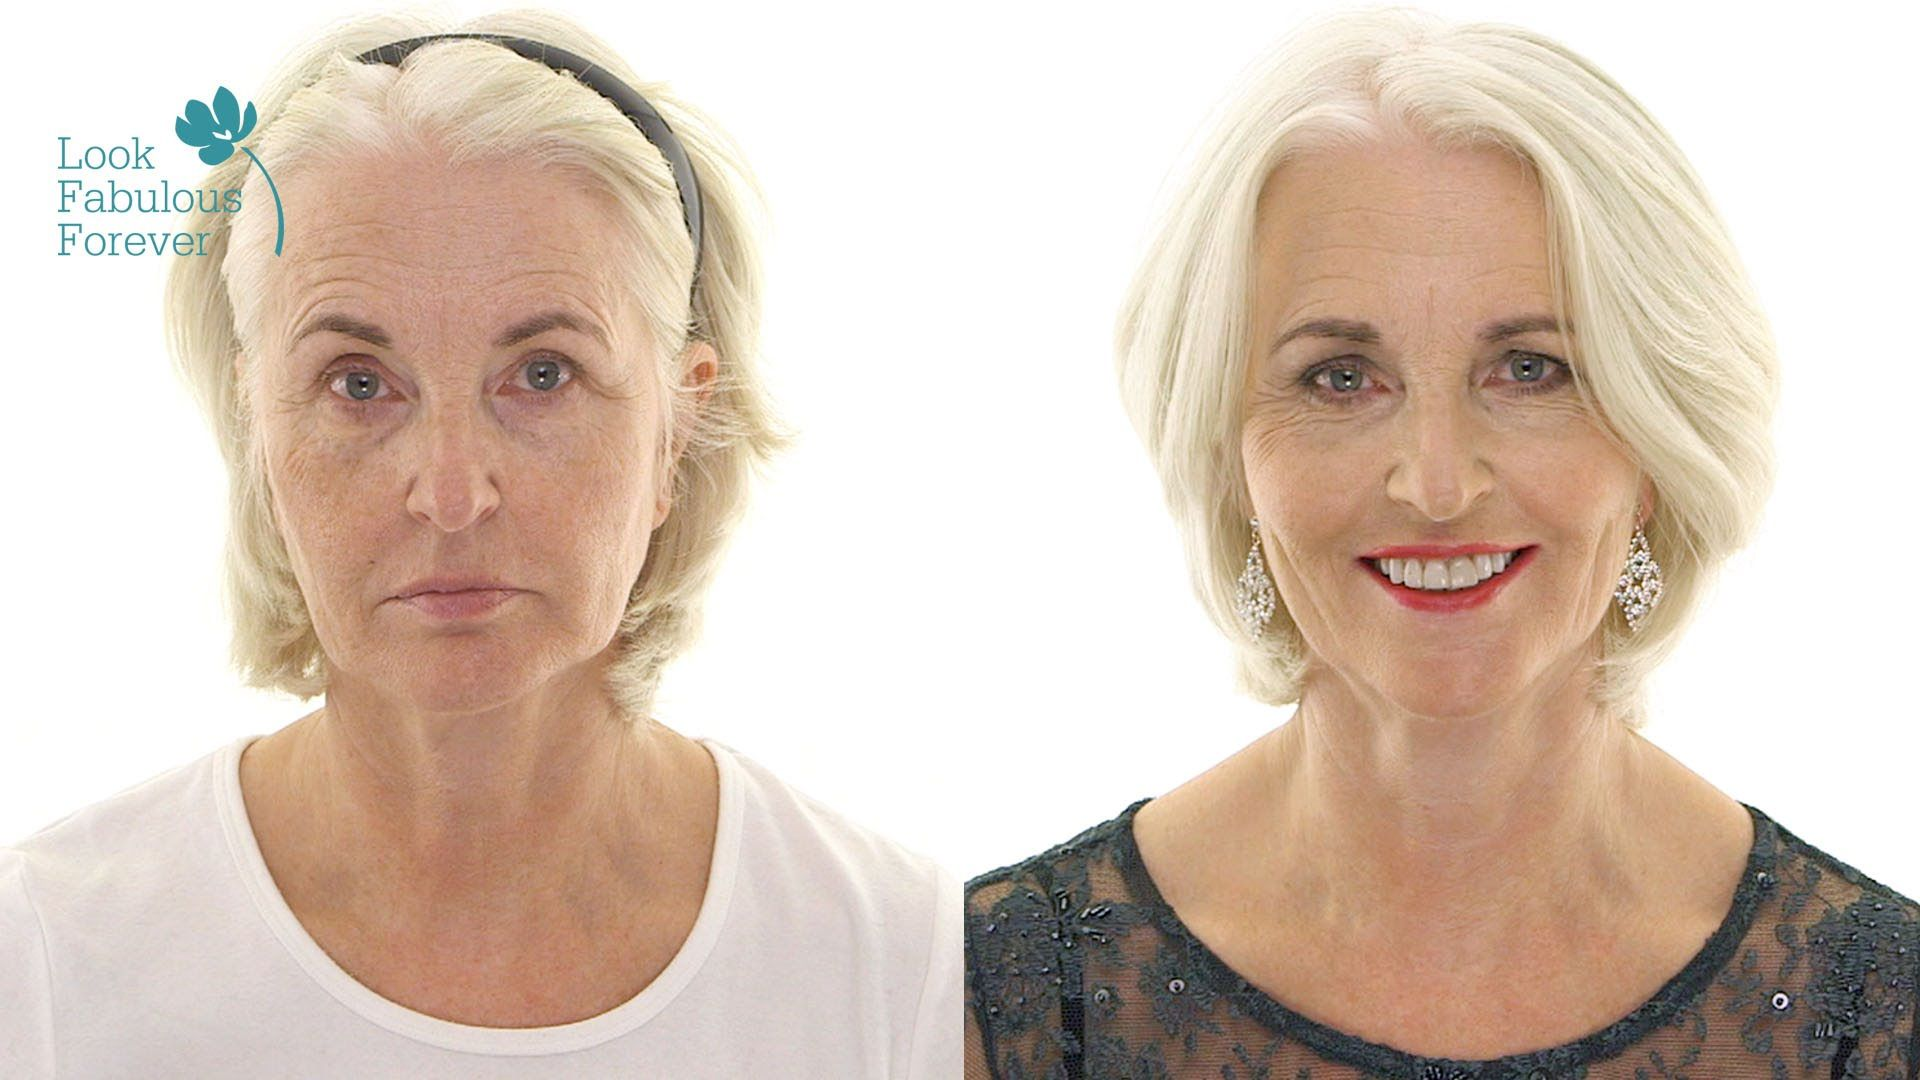 Makeup For Older Women Red Carpet Party Looks By Look Fabulous Forever - SPUNKY SILVER SISTERS ...